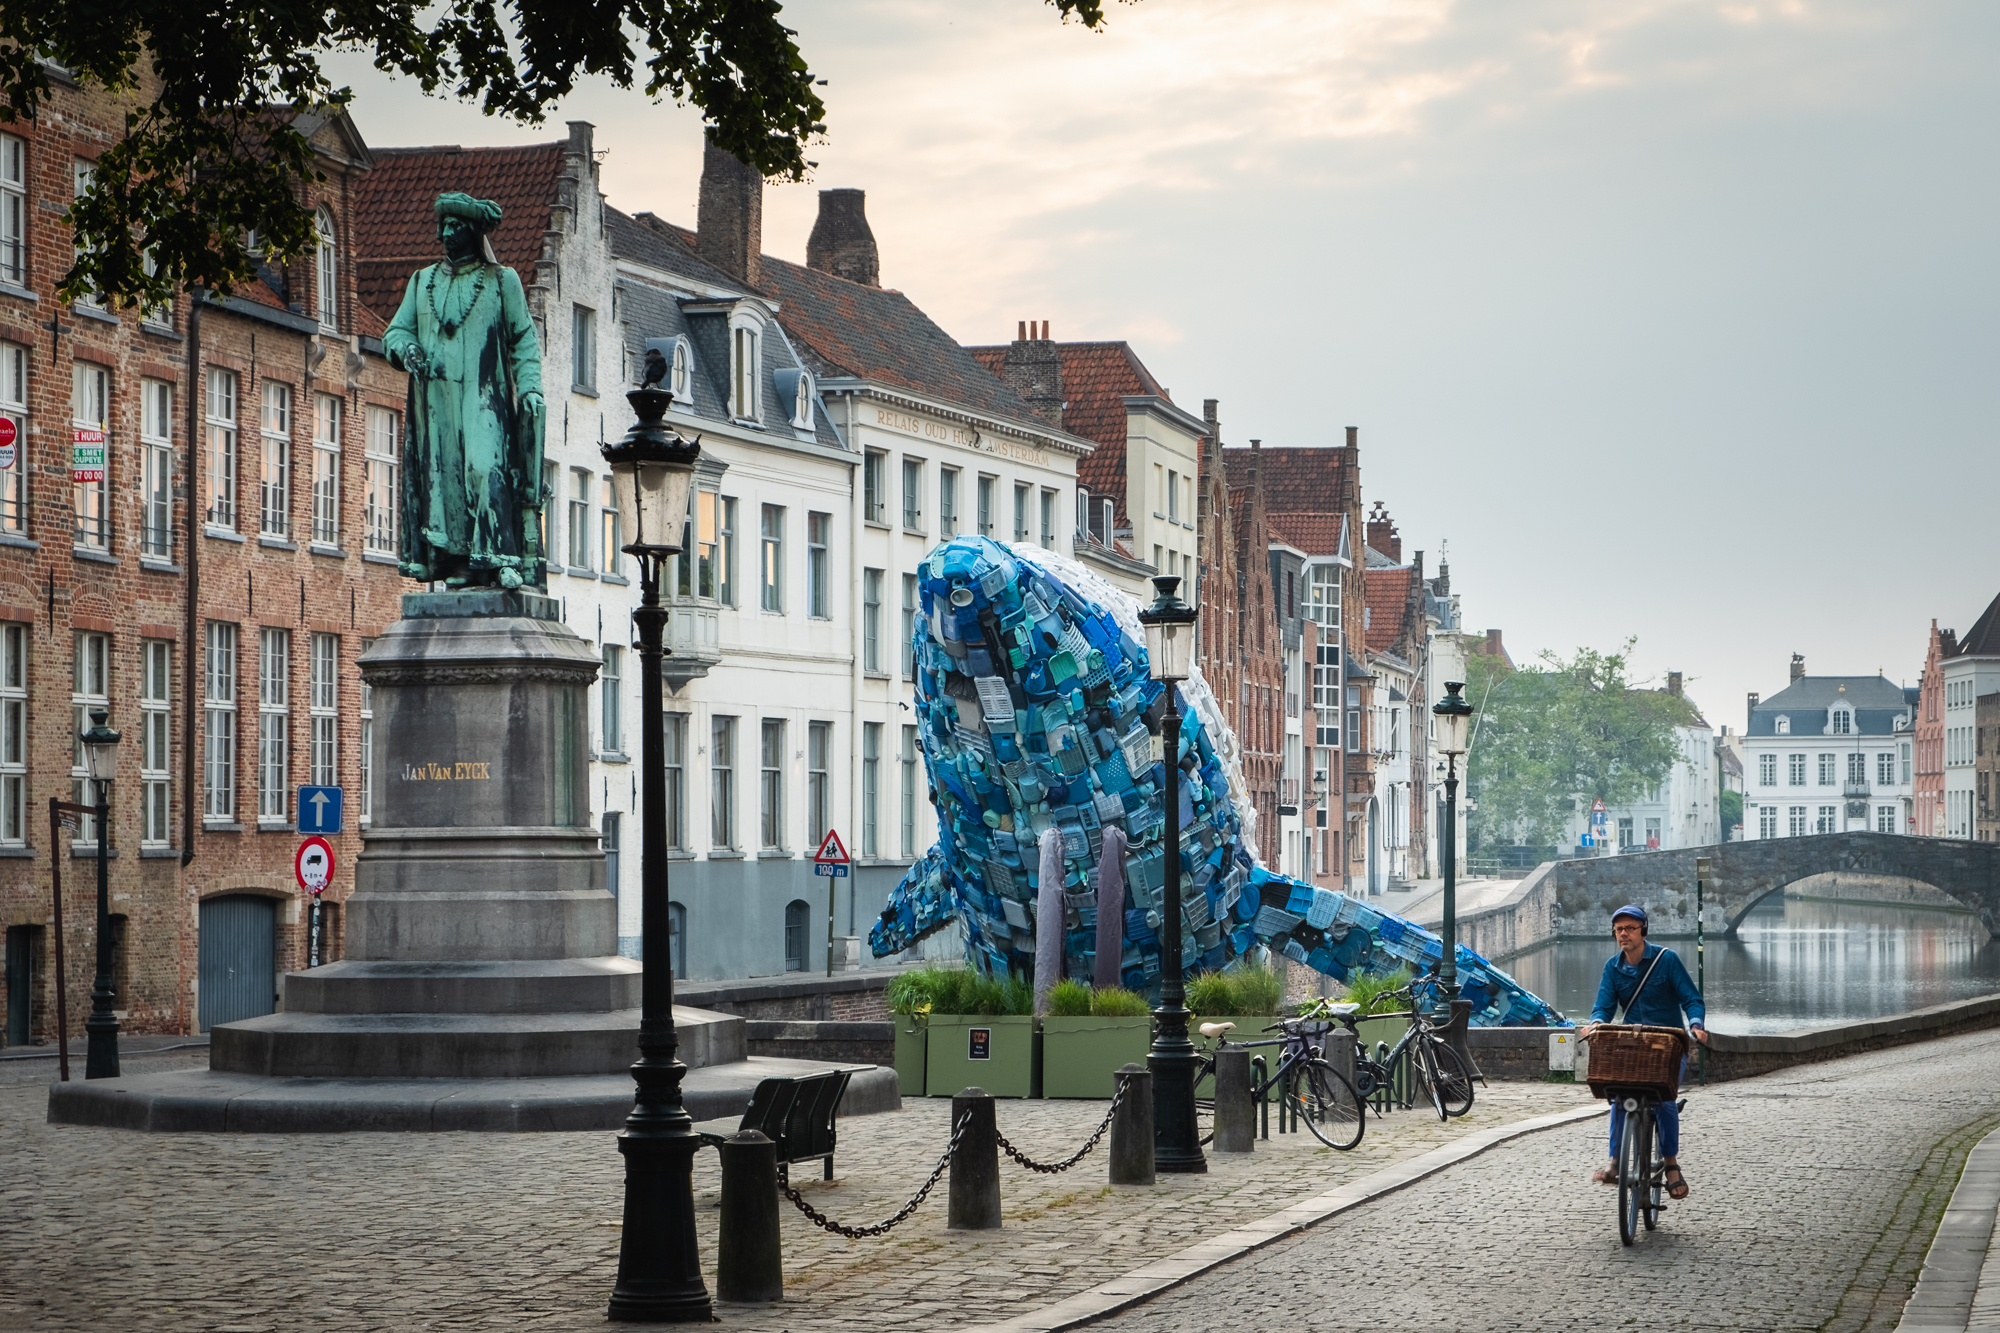 A photo of the Skyscraper and the statue of Jan van Eyck at along the canal in Bruges , Belgium taken by Trevor Sherwin